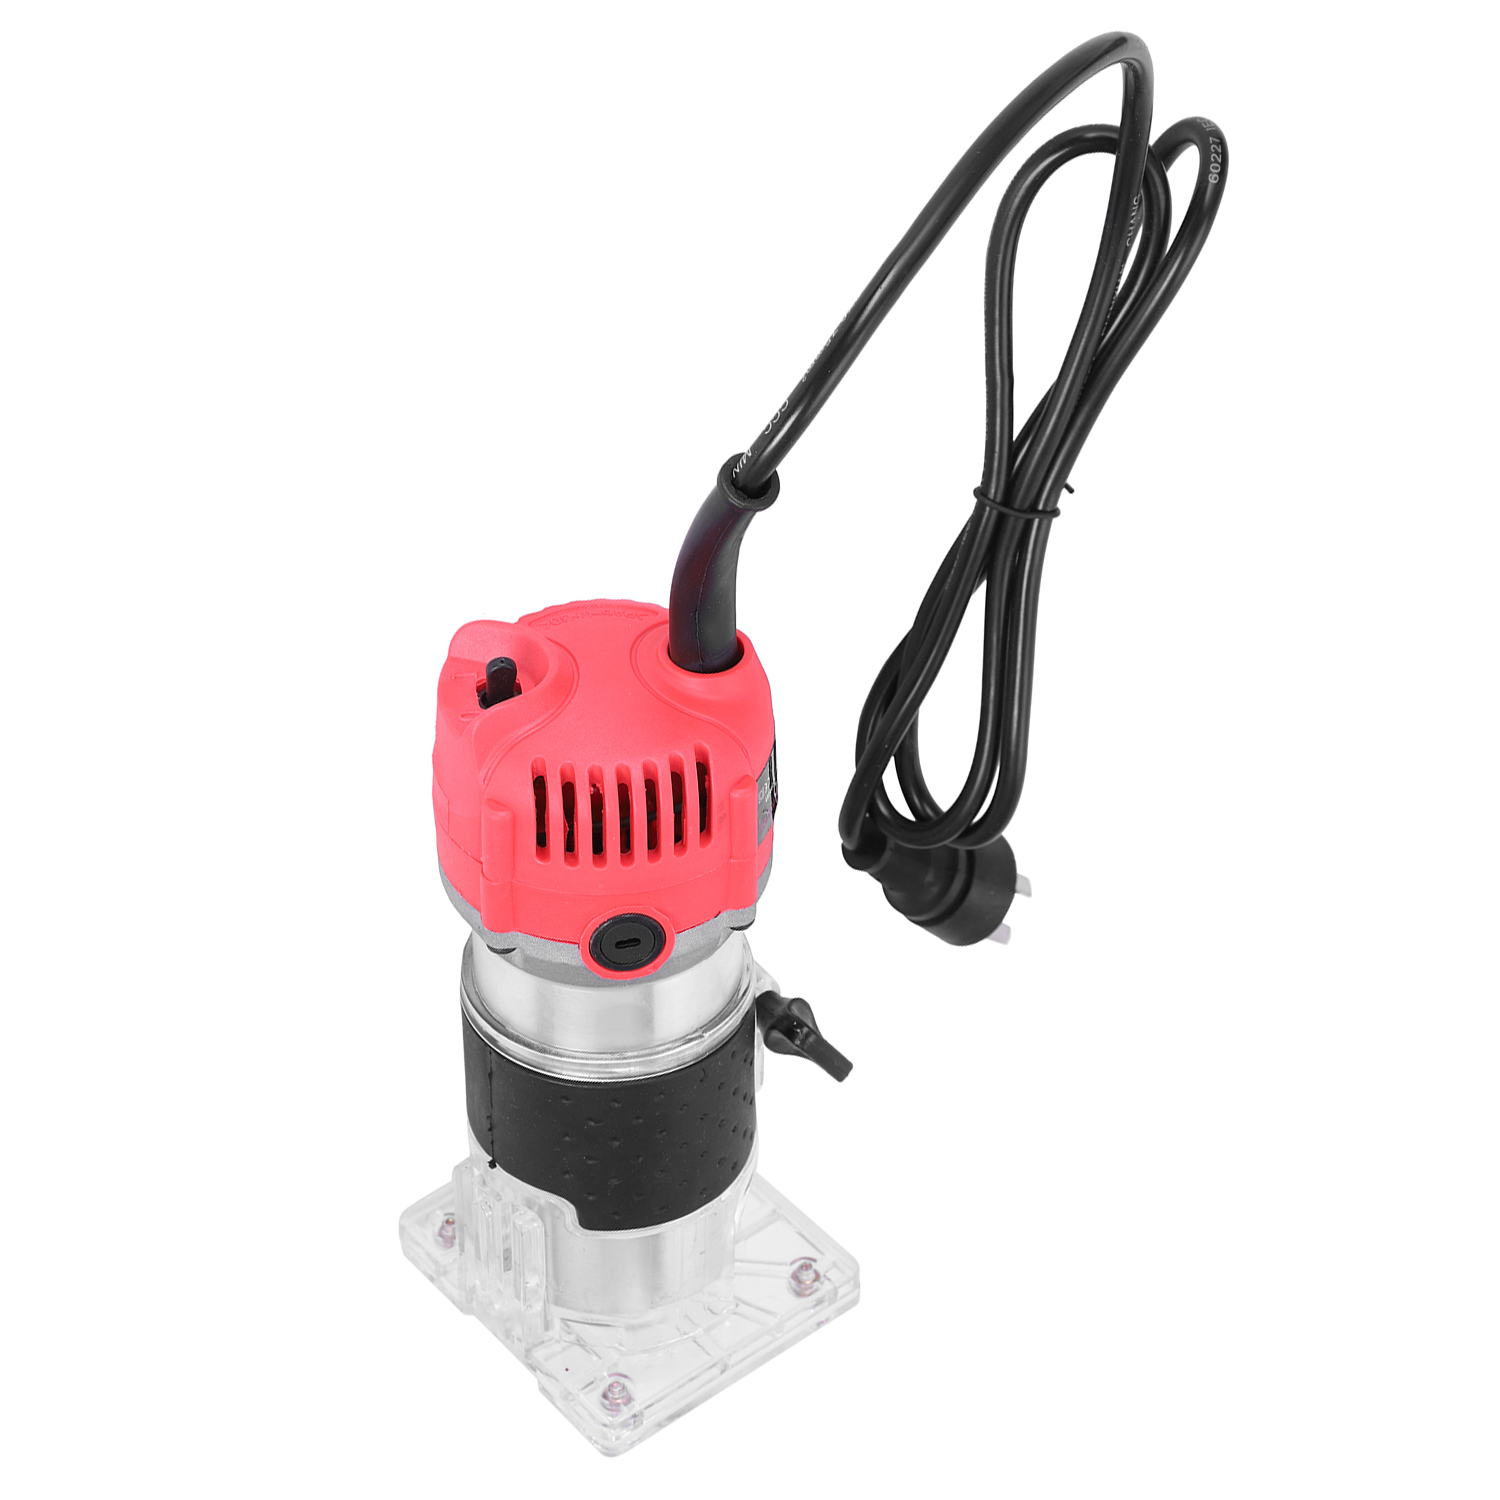 New 620W 110V Wood Trim Router 6.35mm Collection Diameter Electric Manual Trimmer Woodworking Laminated Palm Router WoodworkingNew 620W 110V Wood Trim Router 6.35mm Collection Diameter Electric Manual Trimmer Woodworking Laminated Palm Router Woodworking